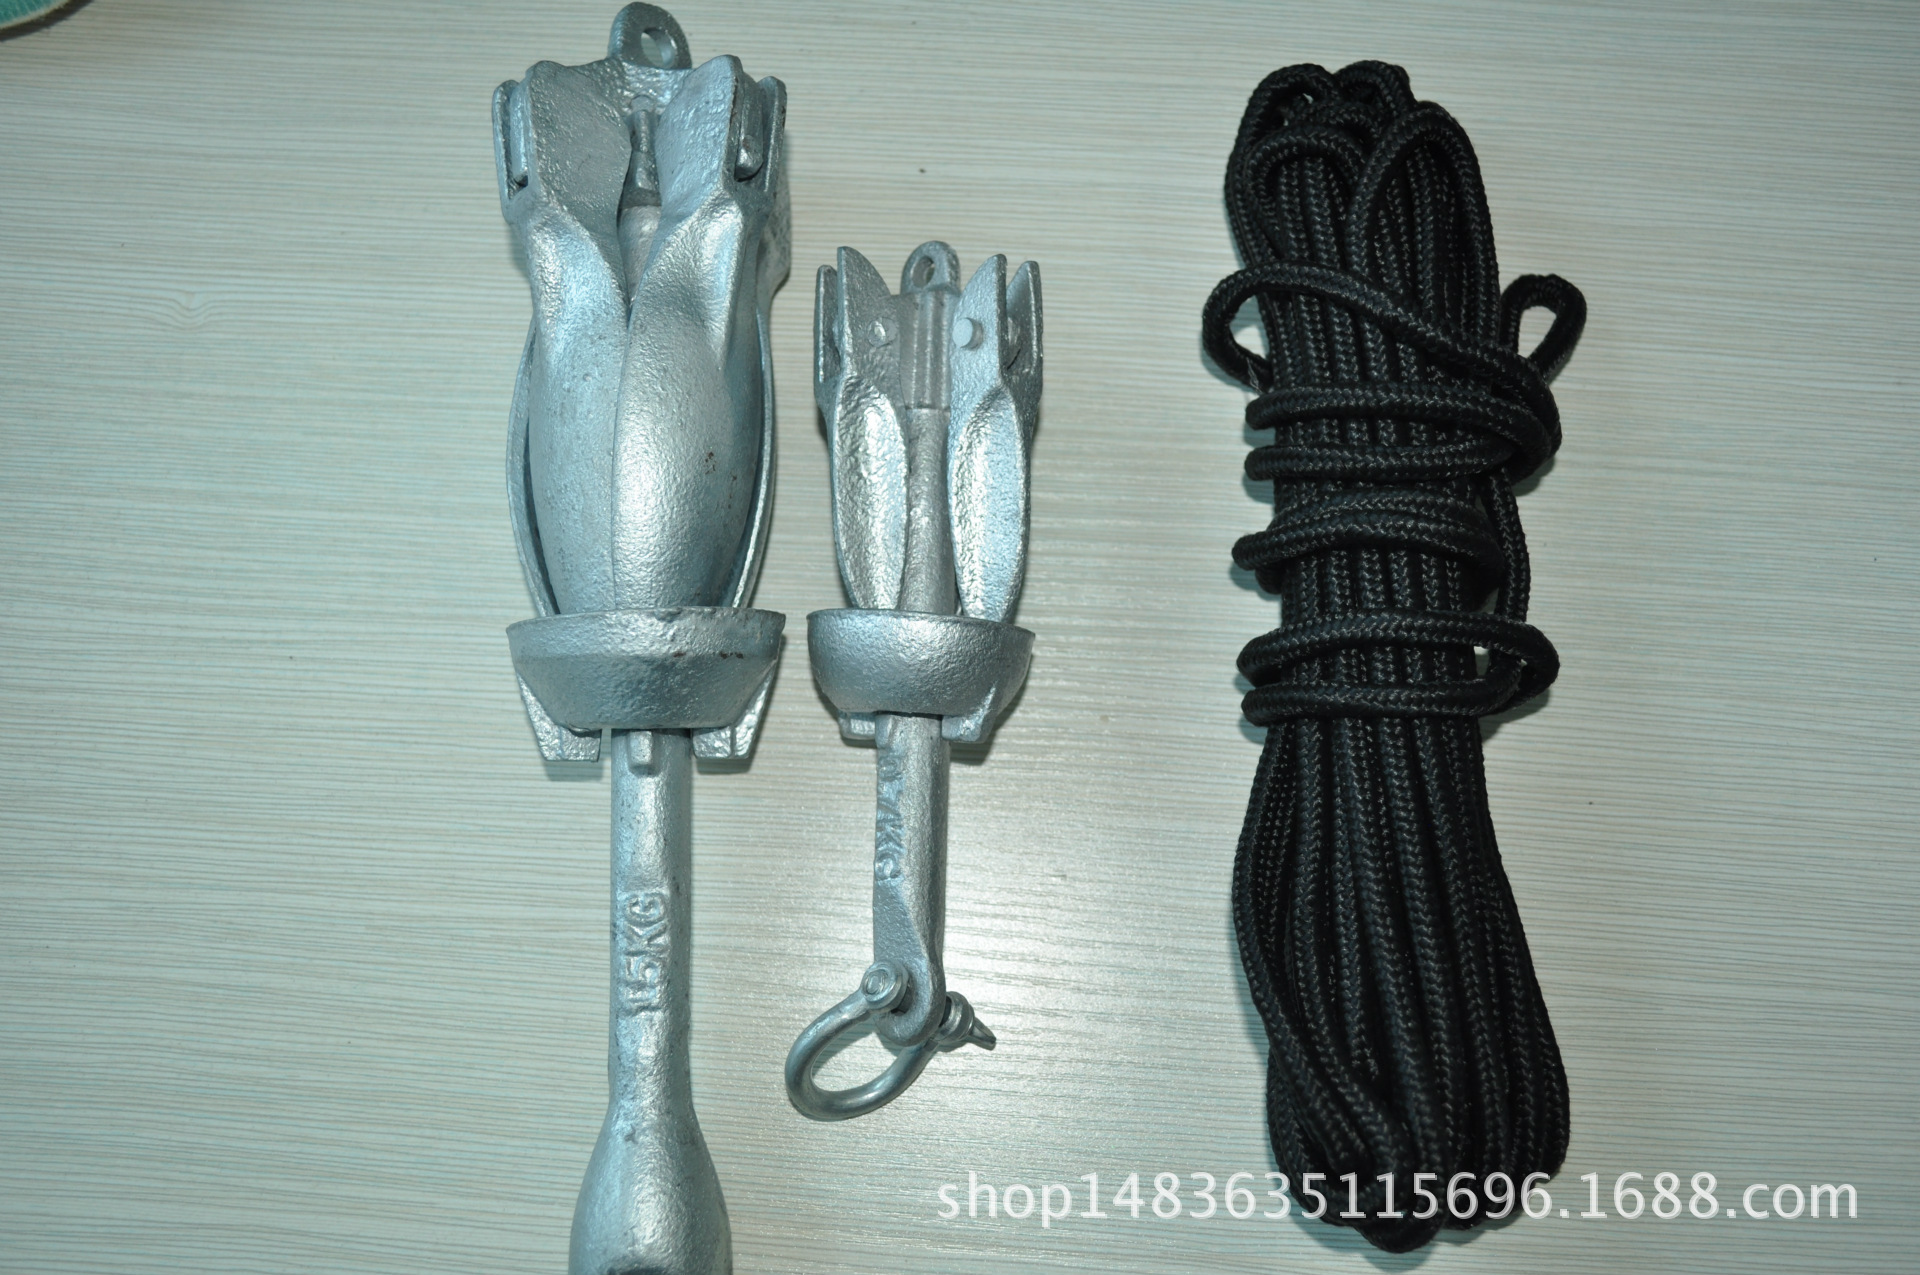 Manufacturers Wholesale Marine Zhe Die Mao Galvanized Anchor Rubber Boats Fishing Boat Inflatable Boat Only Anchor With Anchor R